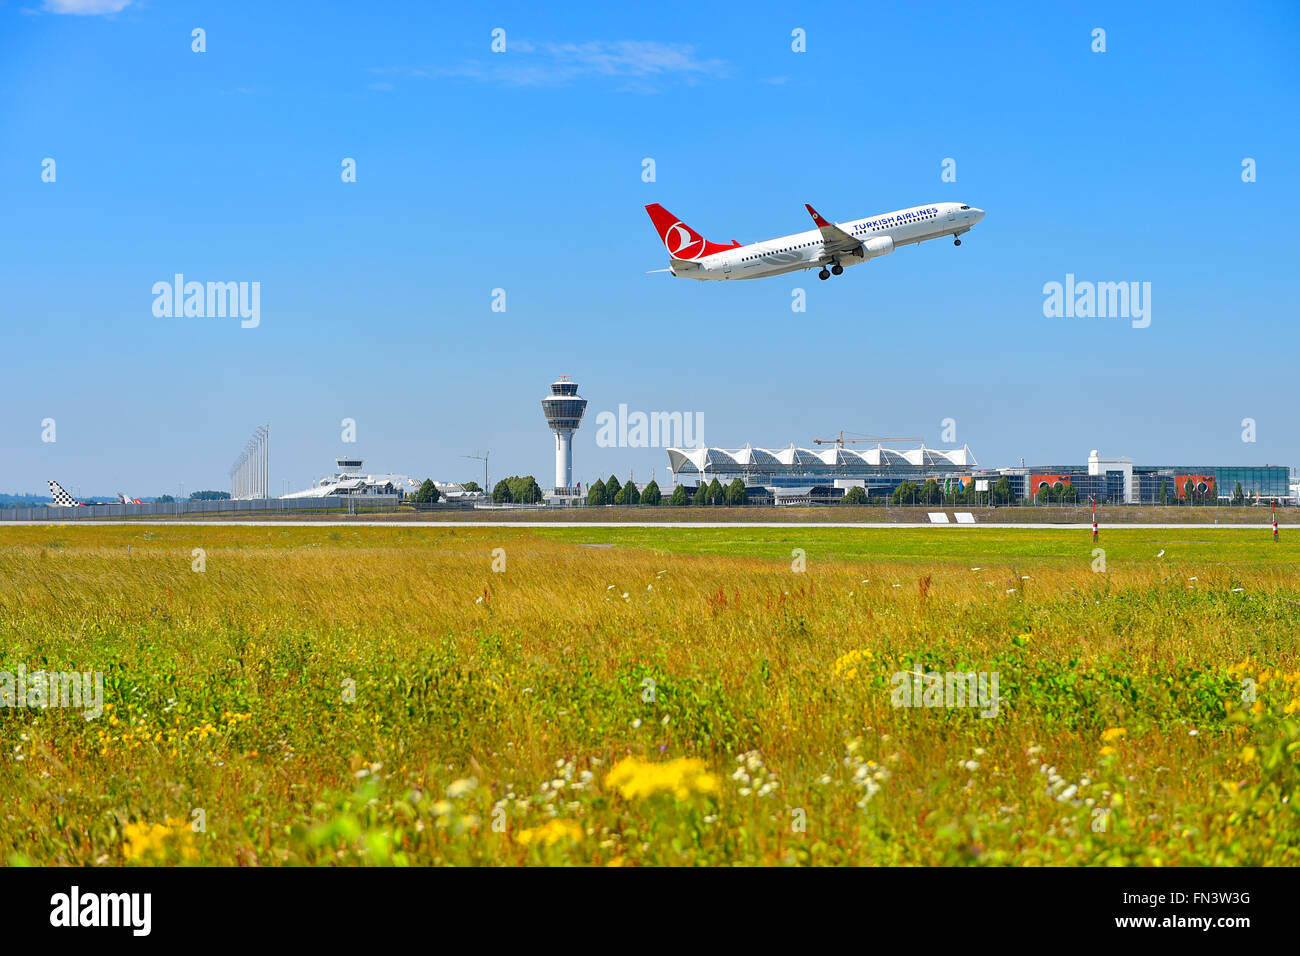 Turkish Airlines, Boeing, B 737 - 800, B737, take of, take off, aircraft, airport, overview, panorama, view, aircraft, - Stock Image